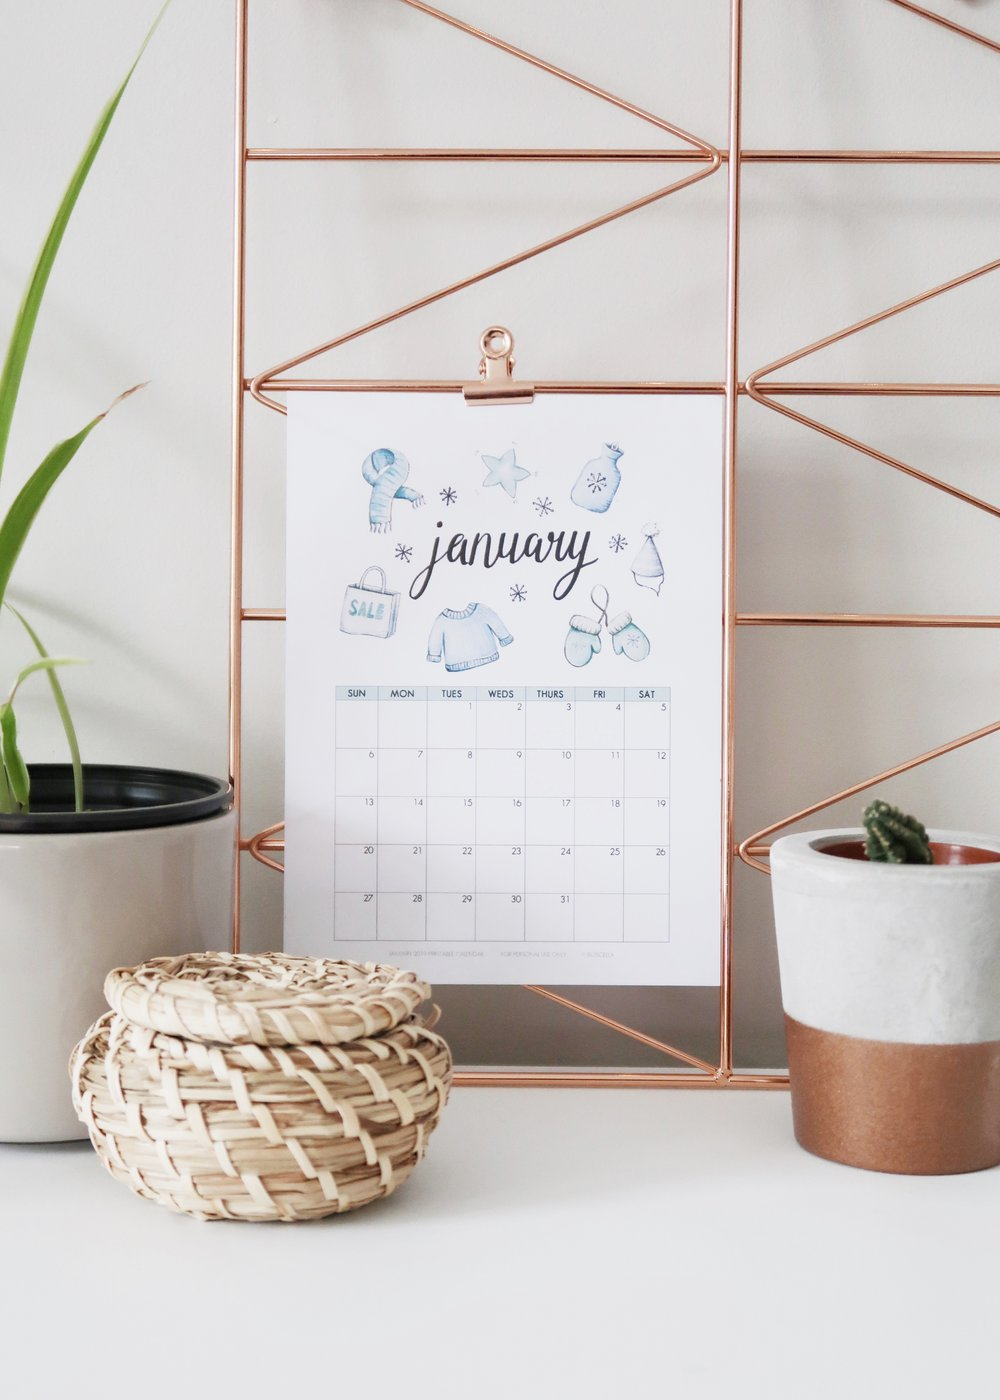 New Illustrated January 2019 Calendar (+Free Printable) by Isoscella